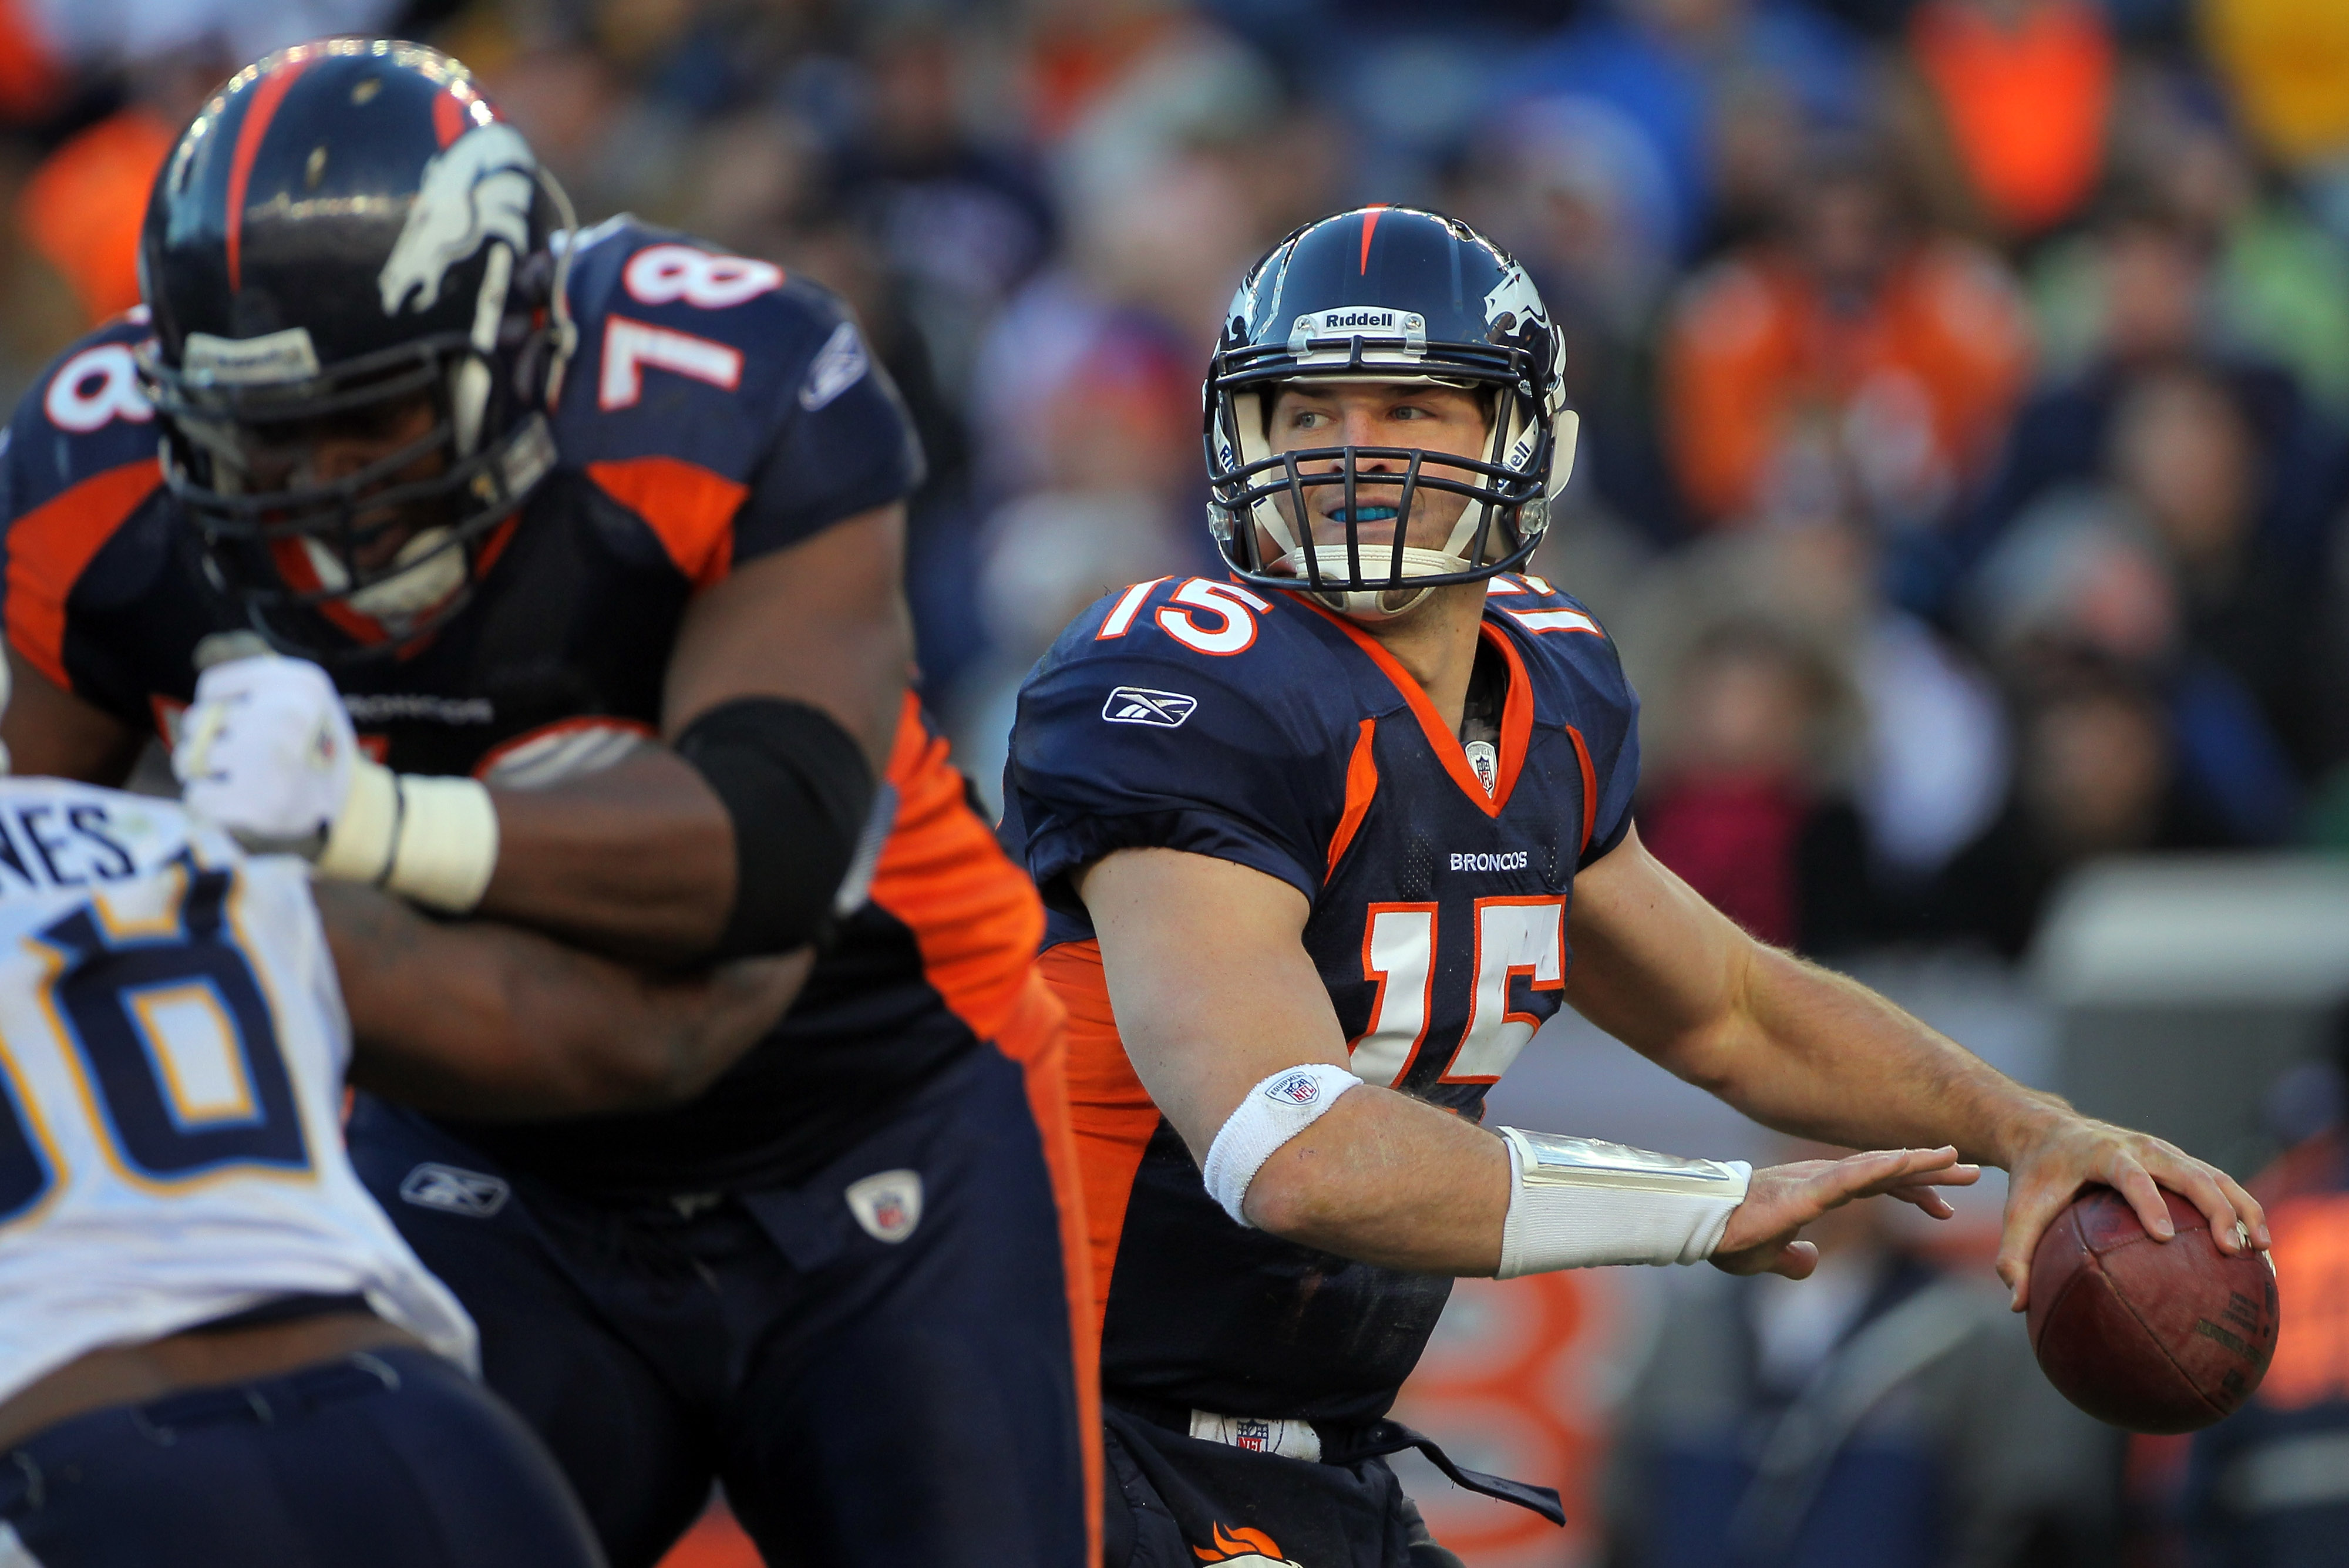 DENVER - JANUARY 02:  Quarterback Tim Tebow #15 of the Denver Broncos looks to deliver a pass behind the protection of offensive lineman Ryan Clady #78 as he blocks Antwan Barnes #98 of the San Diego Chargers at INVESCO Field at Mile High on January 2, 20